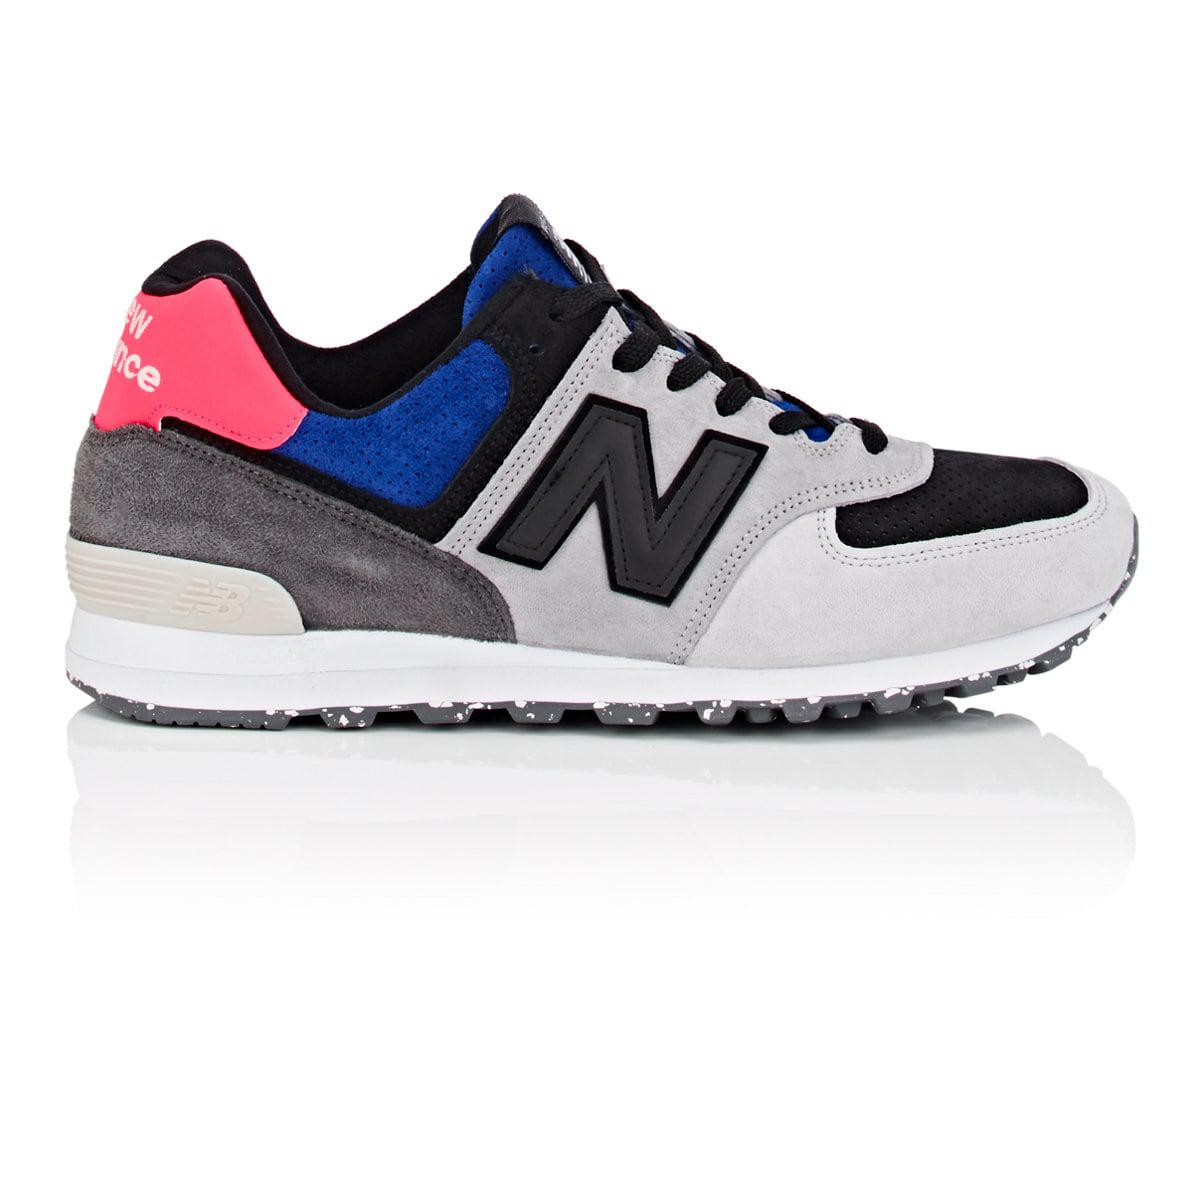 premium selection c59f9 24296 New Balance 574 Suede & Nubuck Sneakers in Gray for Men - Lyst